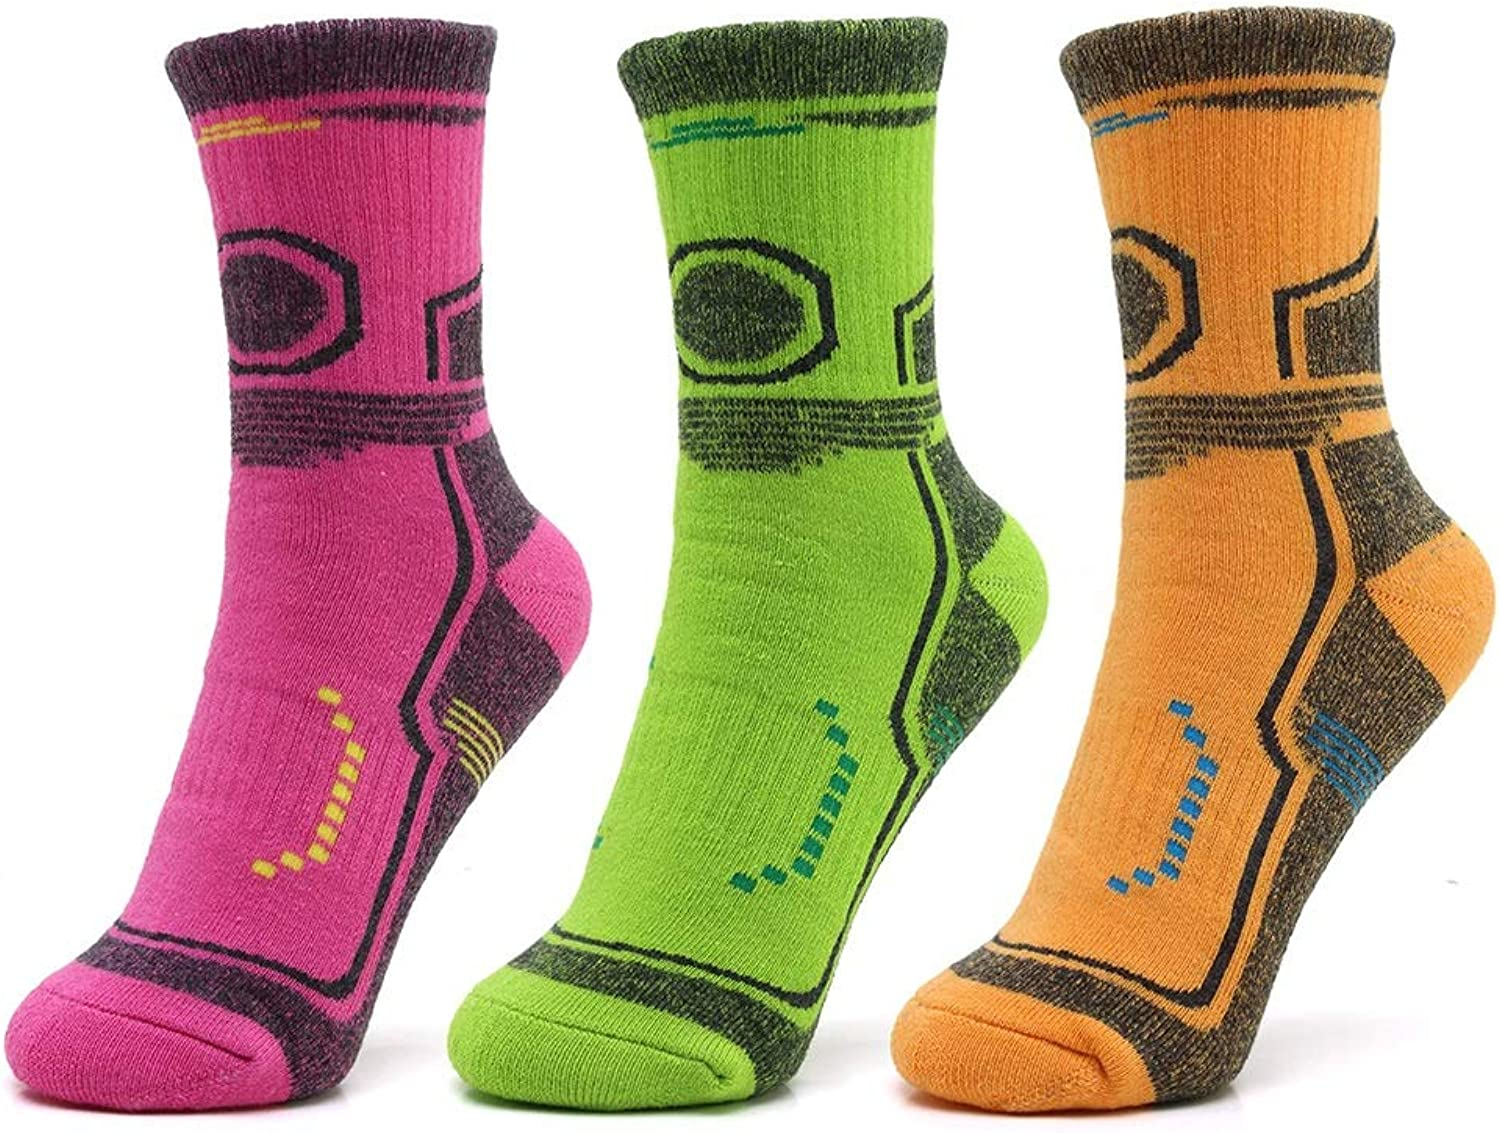 Sports Socks Compression Socks Men's and Women's Best Best Best Running Sports (3 Pairs) Cotton Moisture Wicking Socks (color   Red and Green orange, Size   M) 3889bc